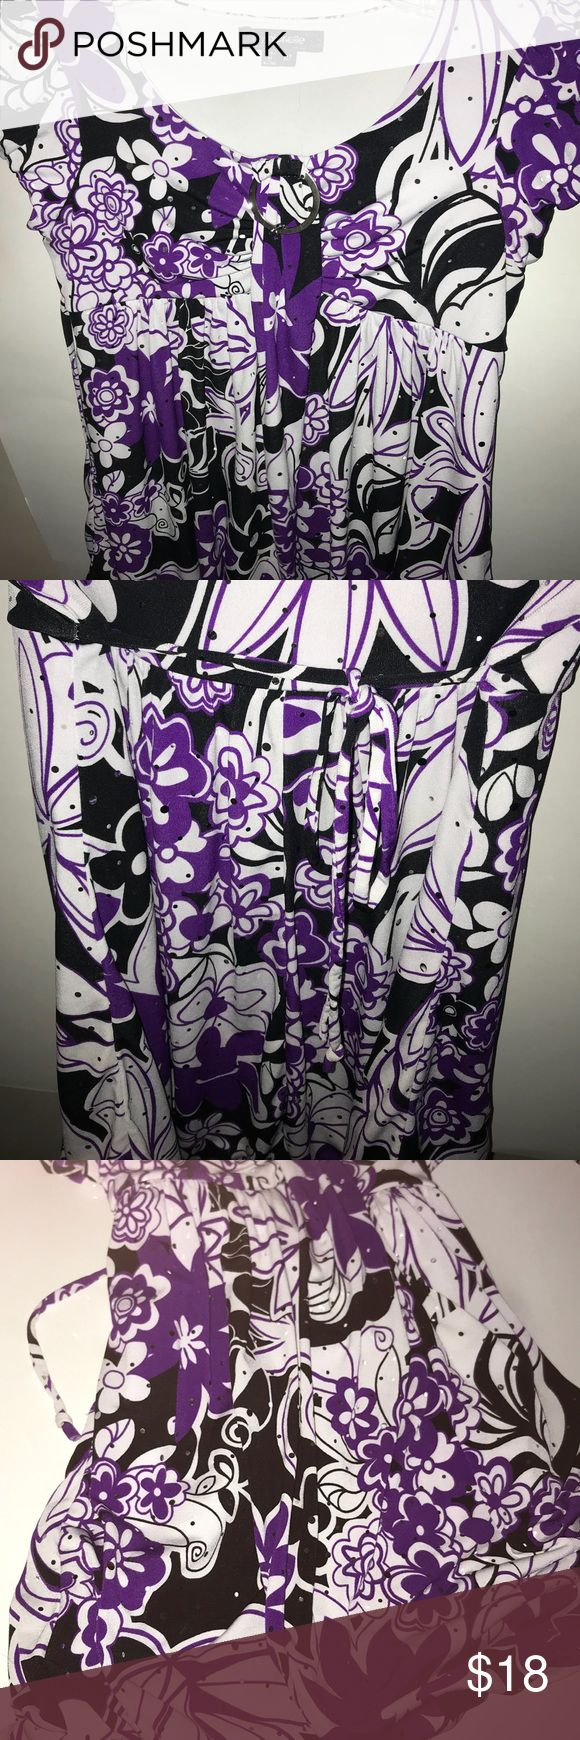 Empire sequenced blouse Gorgeous purple, white and black blouse drizzled with sequence ! A little girl's dream ! Heavy inside liner, metal hoop below neck line. Strings in back define empire waist for a flattering shape. Blouson bottom ( fabric  bundled at hem for gathered appearance with hem line absent. ) Beautiful top !! NEVER WORN! Willing to accept best offer. My Michelle Shirts & Tops Blouses